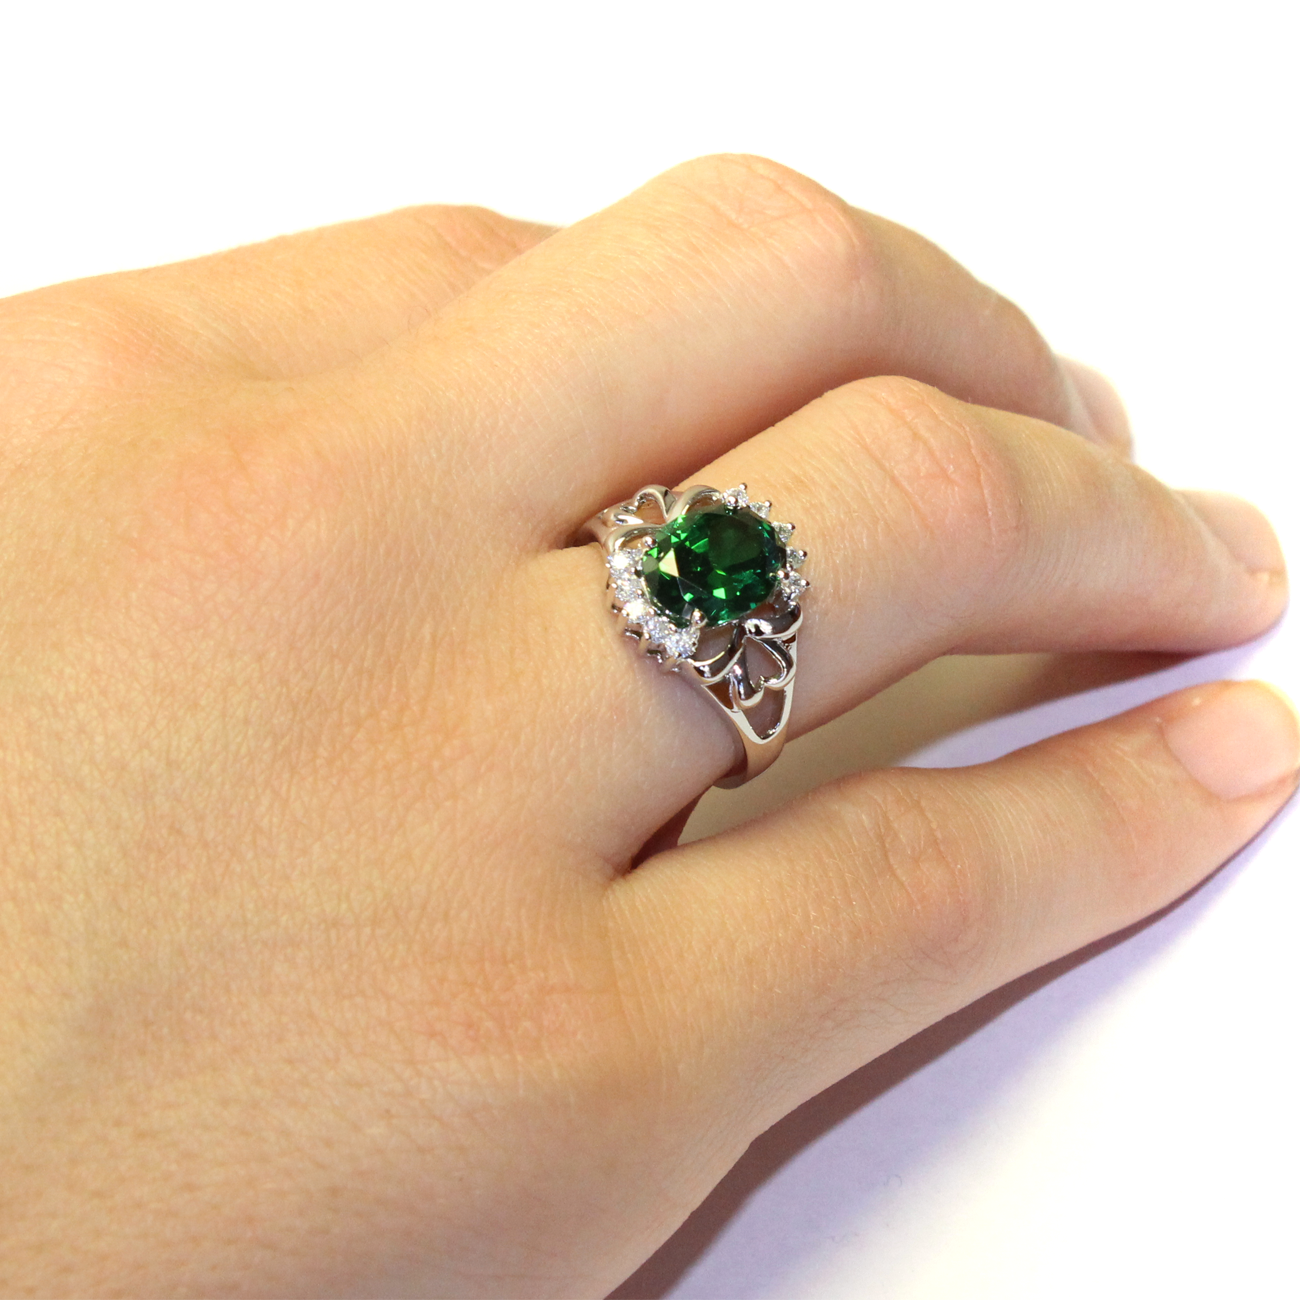 Classic Green Emerald Promise Ring On A Womans Hand